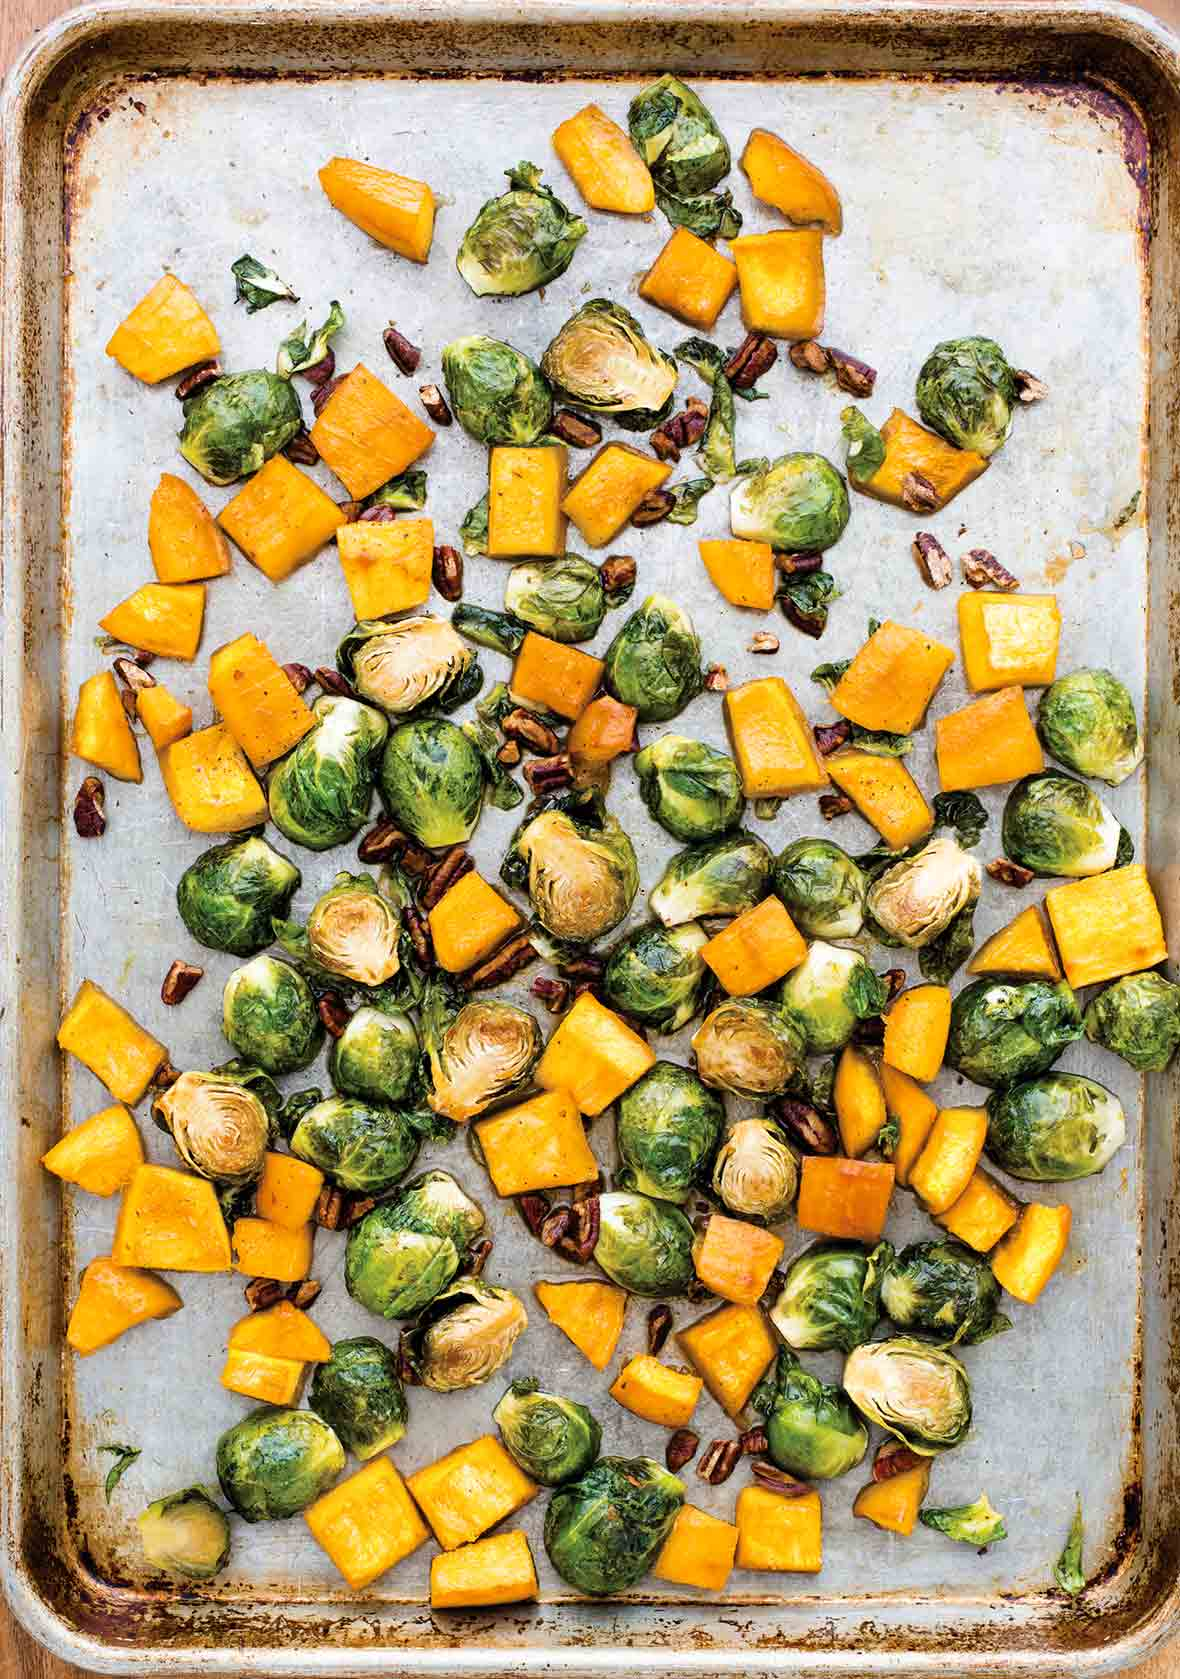 Sheet pan with chunks of roasted pumpkin and Brussels sprouts